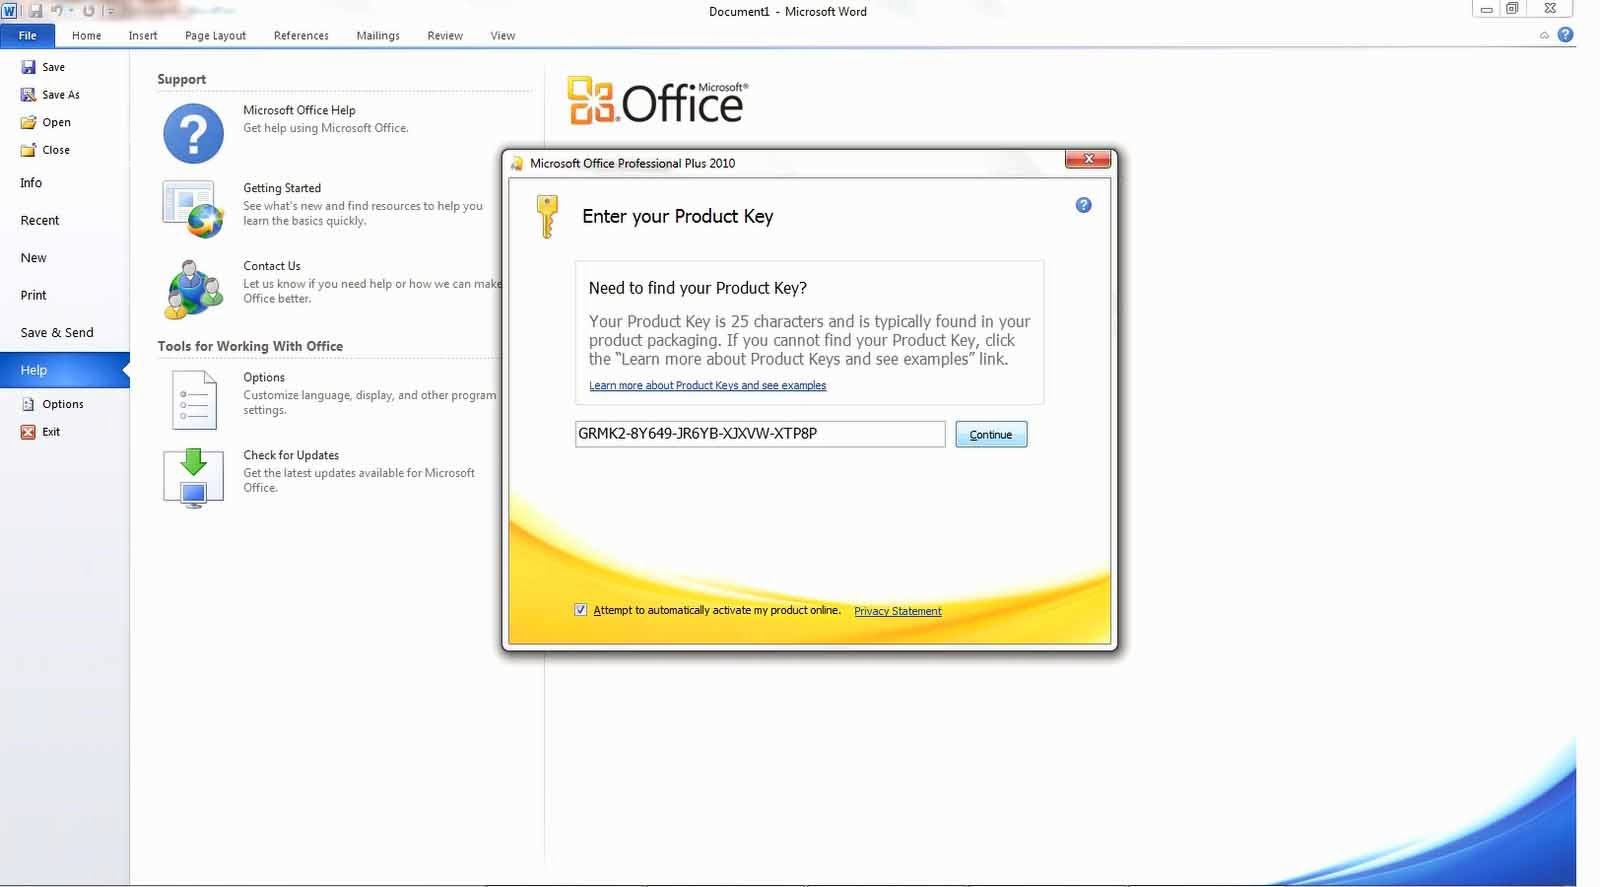 buy microsoft office professional plus 2010 product key online